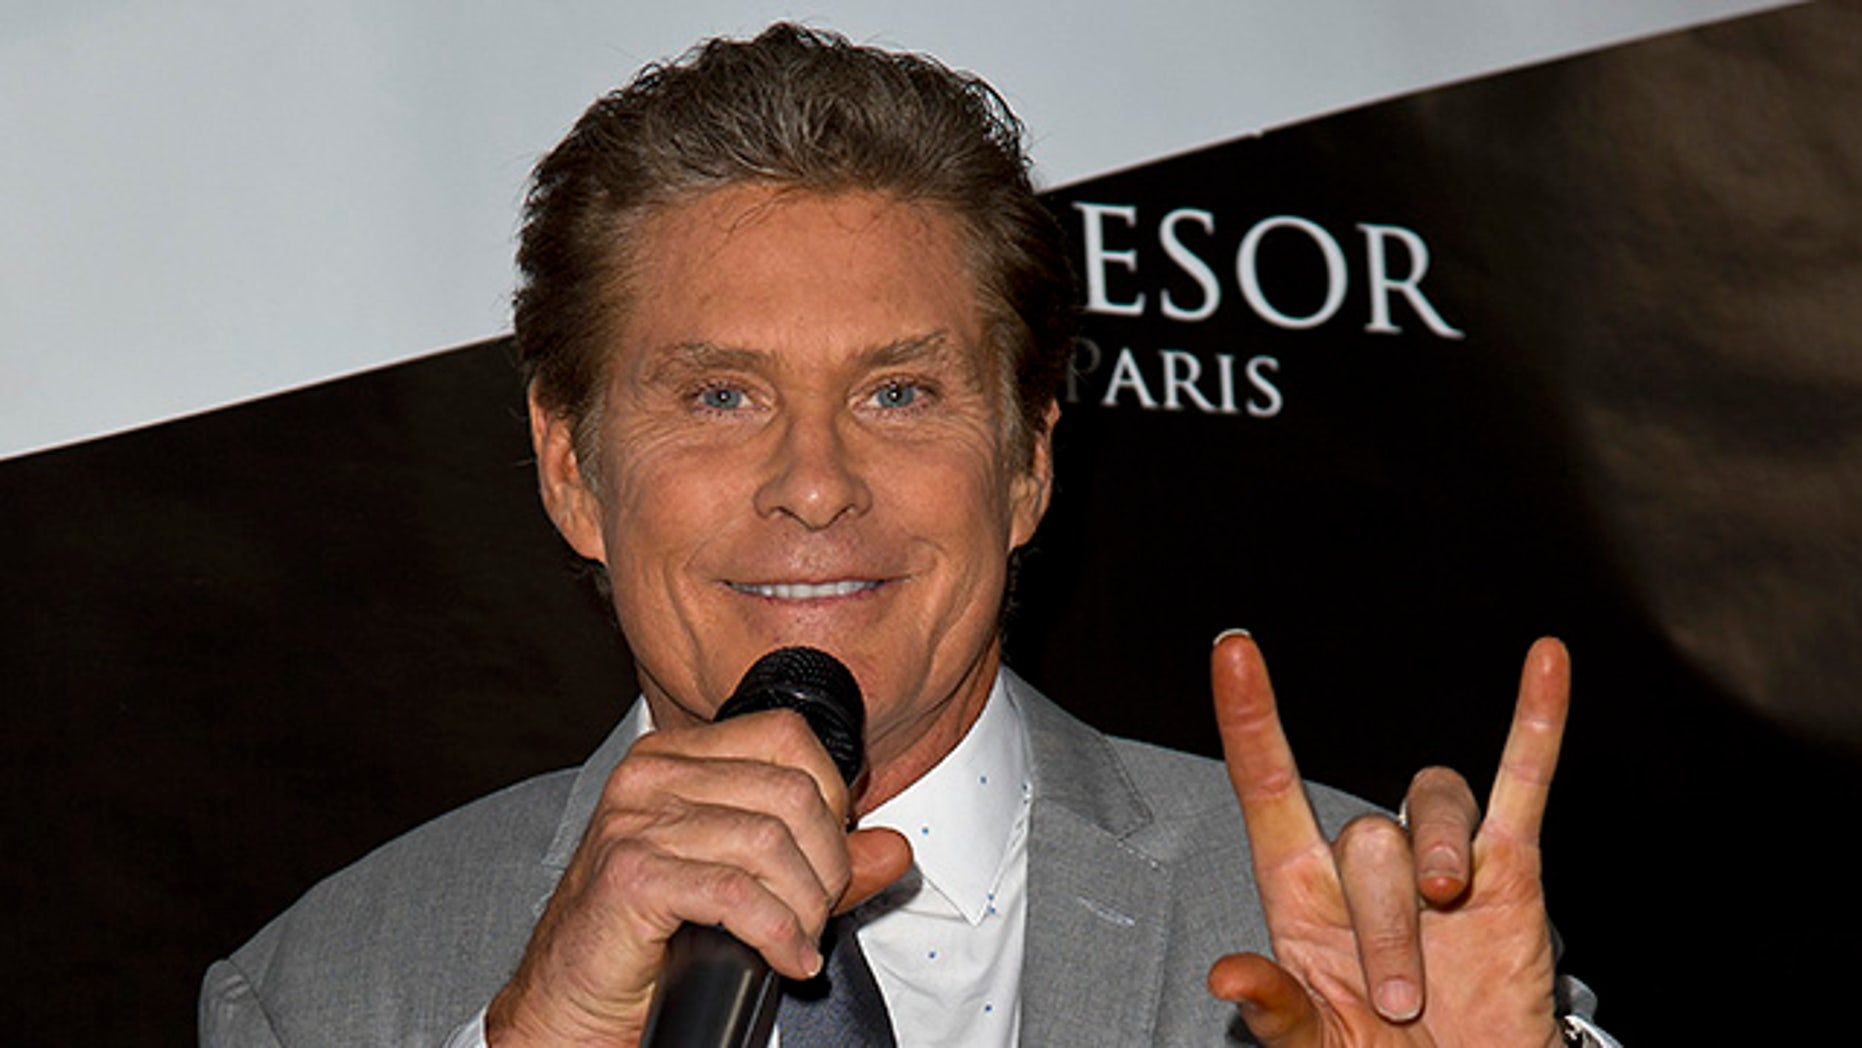 LONDON, ENGLAND - JUNE 16:  David Hasselhoff attends the Tresor Paris Store launch on June 16, 2015 in London, England.  (Photo by Ben A. Pruchnie/Getty Images)